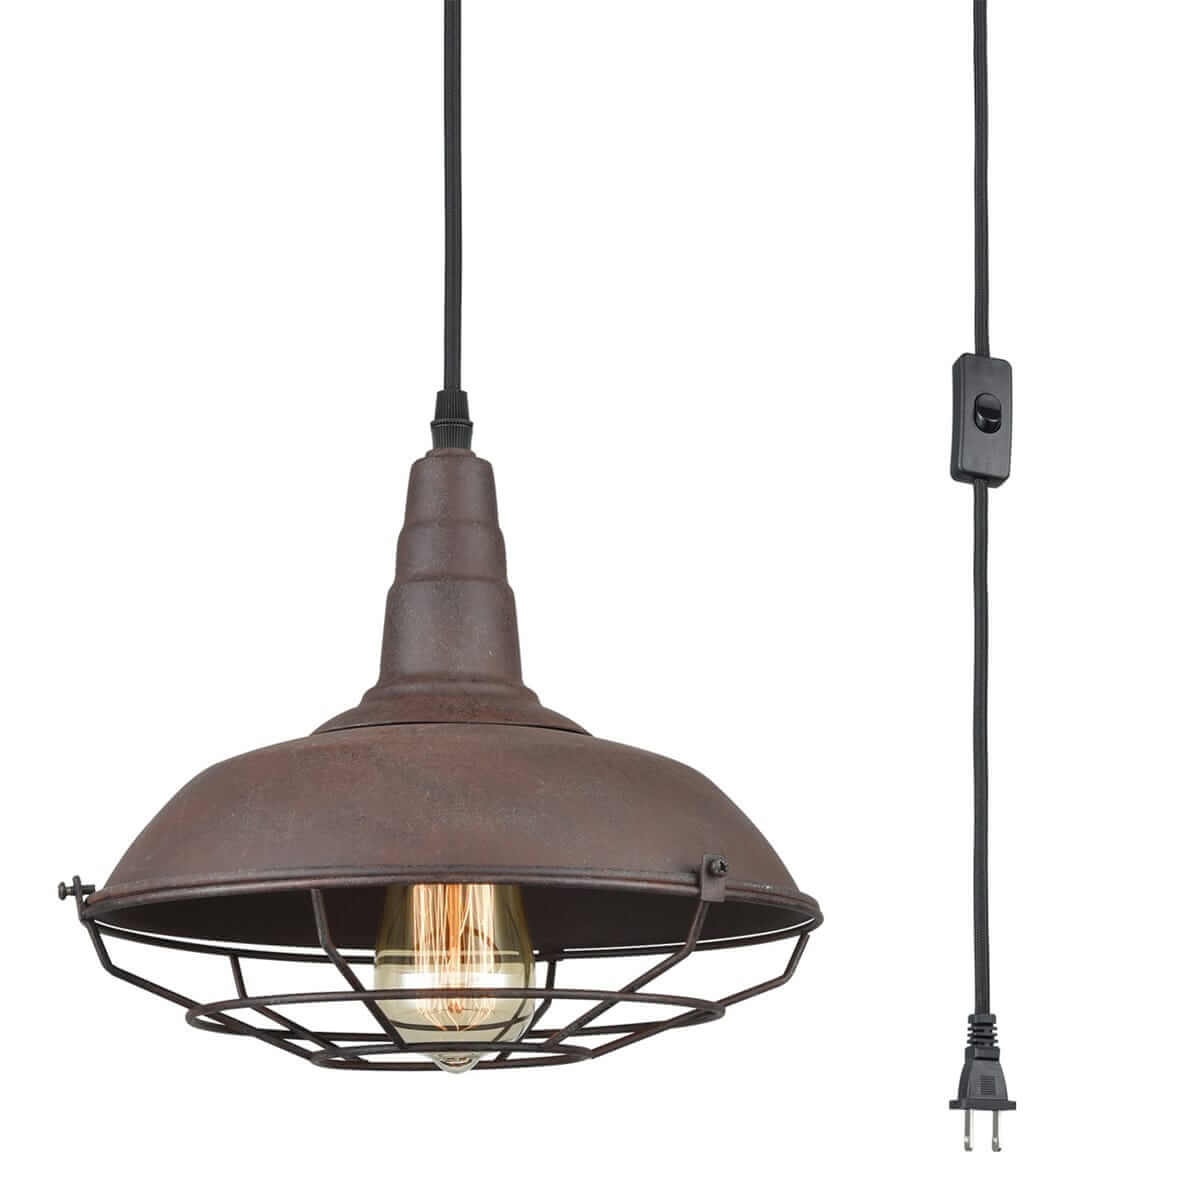 Farmhouse Plug-In Pendant Light Rust Finish with Metal Cage Shade